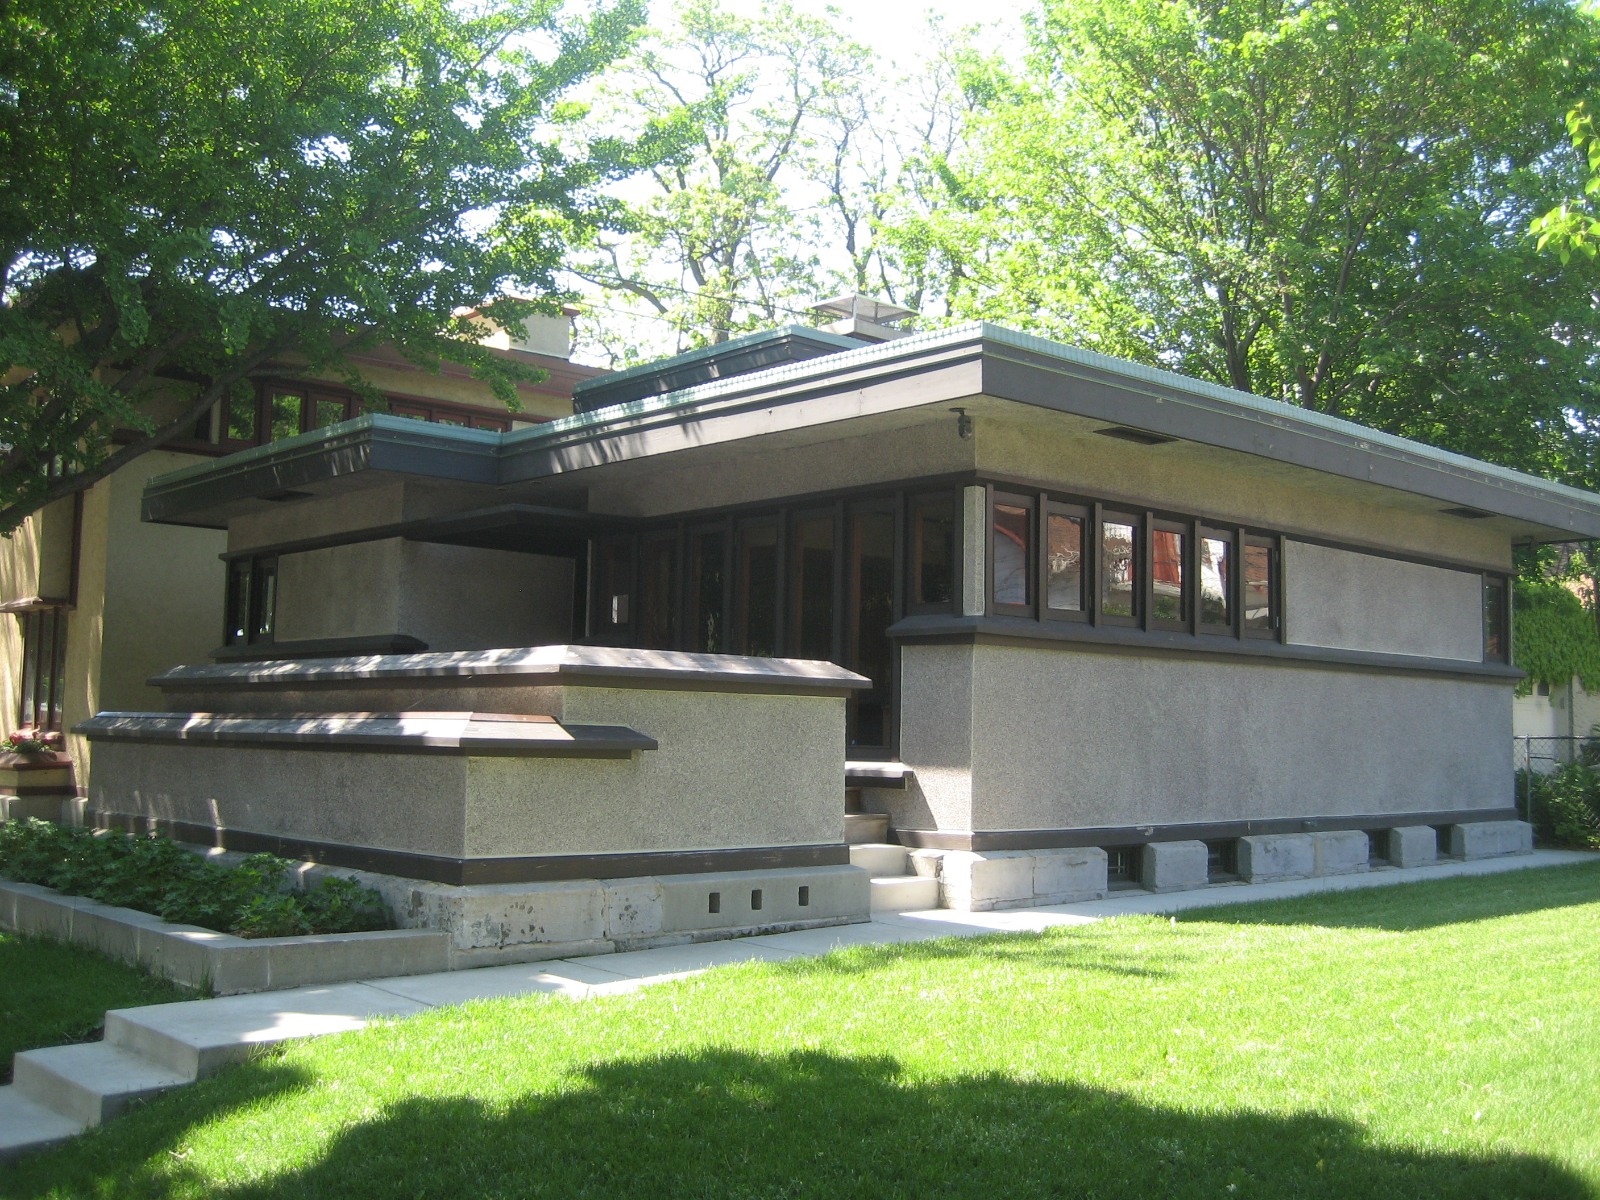 Milwaukee Architecture The Legacy Of Frank Lloyd Wright